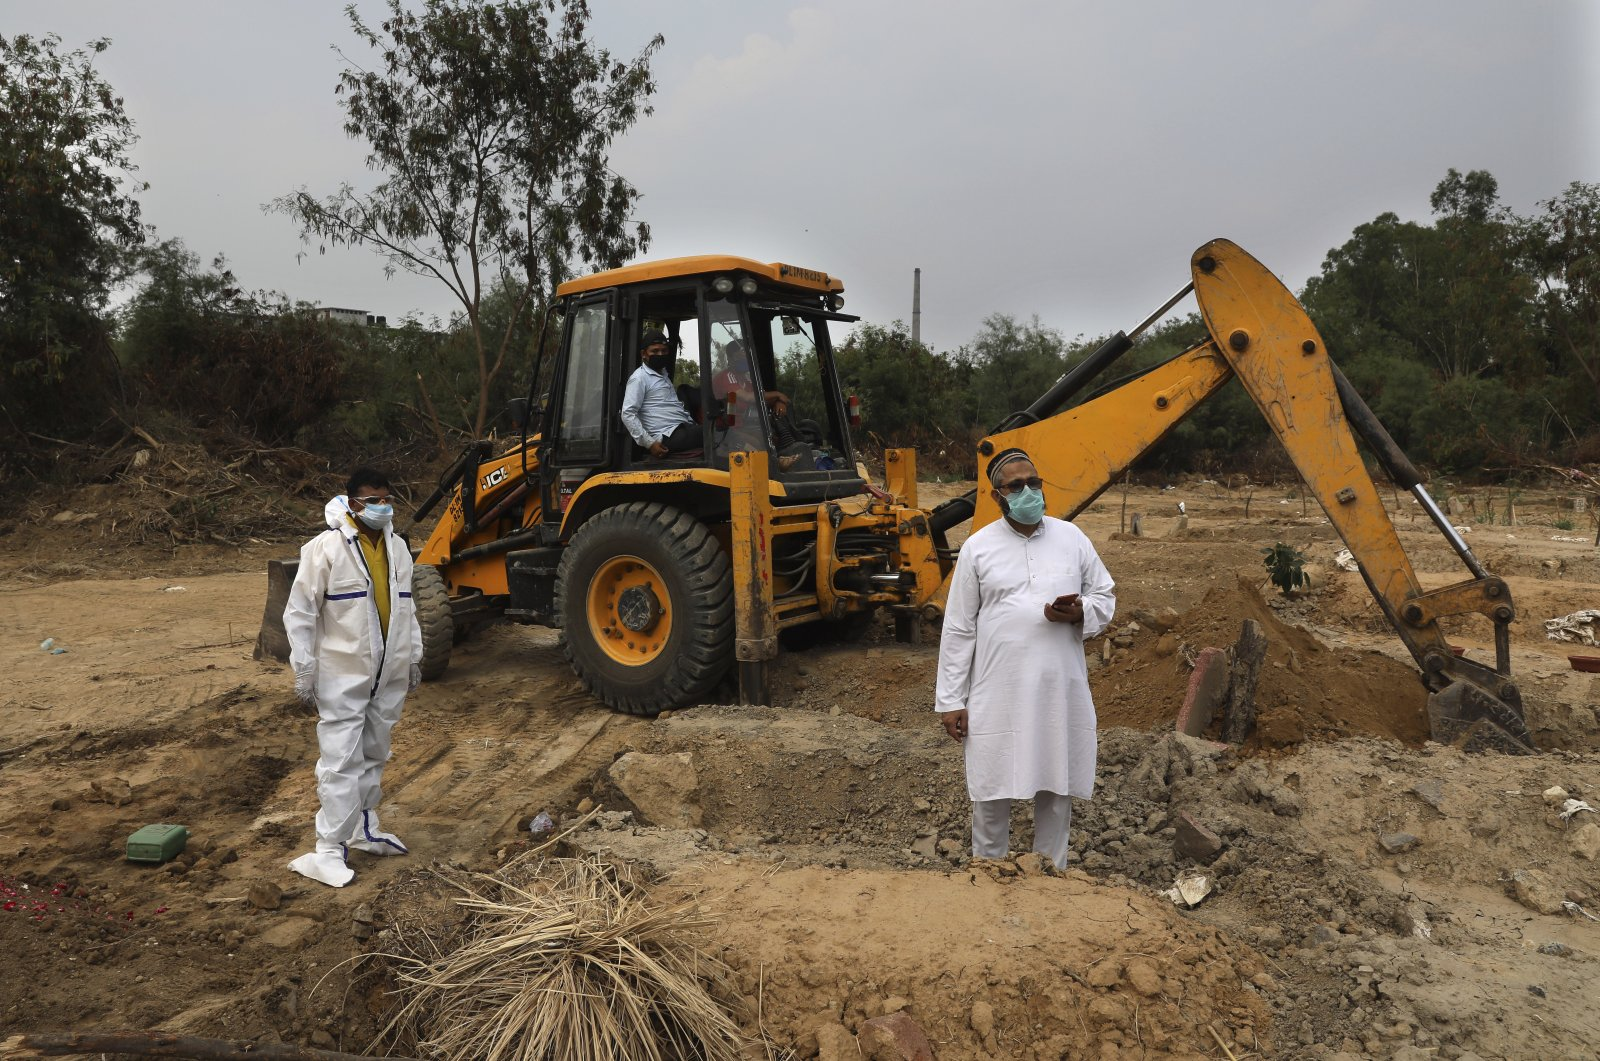 People wait for others to join as an earthmover digs a grave for the burial of a COVID-19 victim at a cemetery in New Delhi, India, June 5, 2020. (AP Photo)